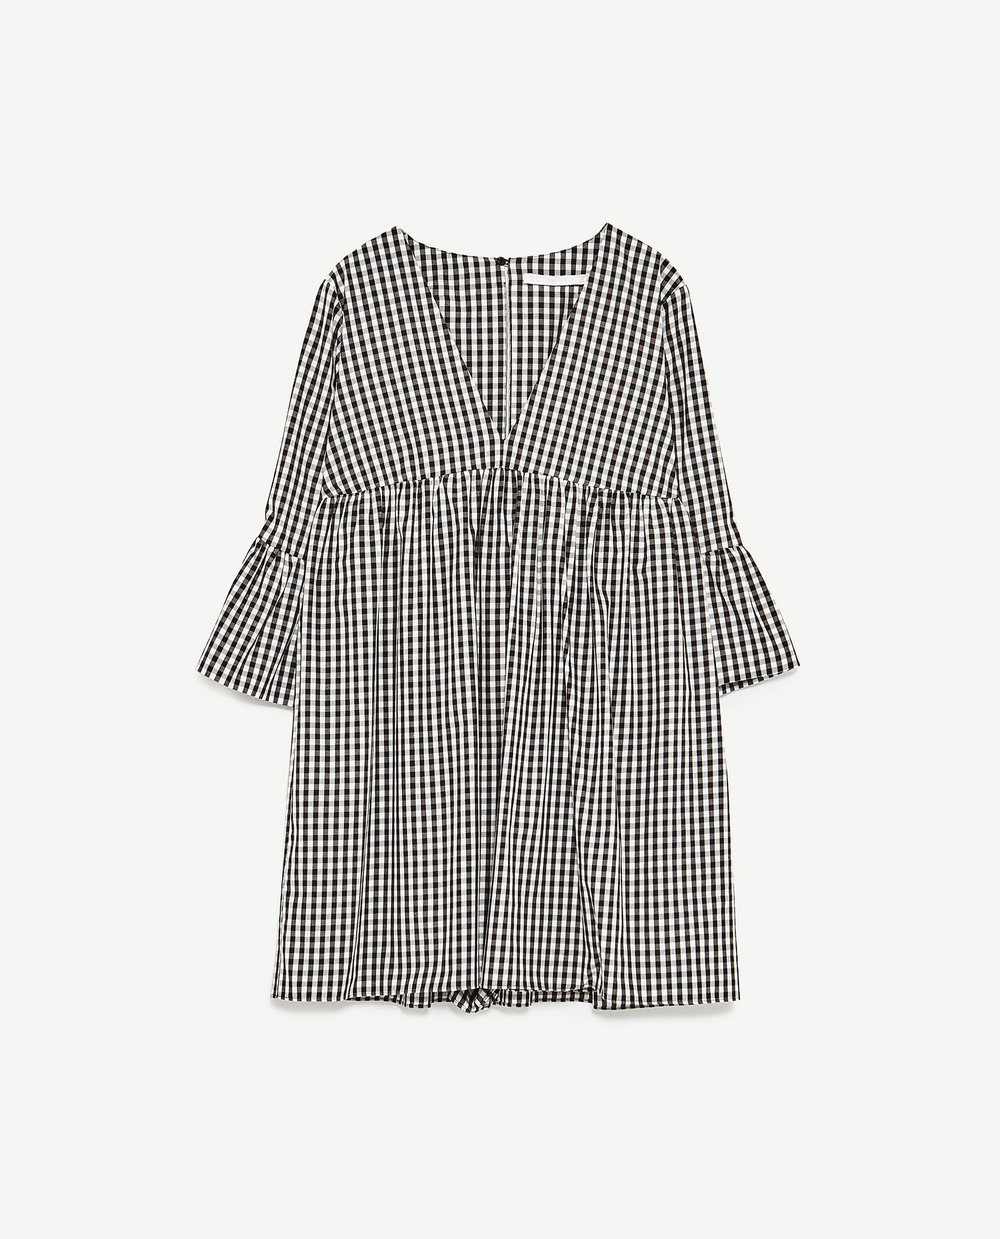 Checked Jumpsuit Dress £25.99 by Zara